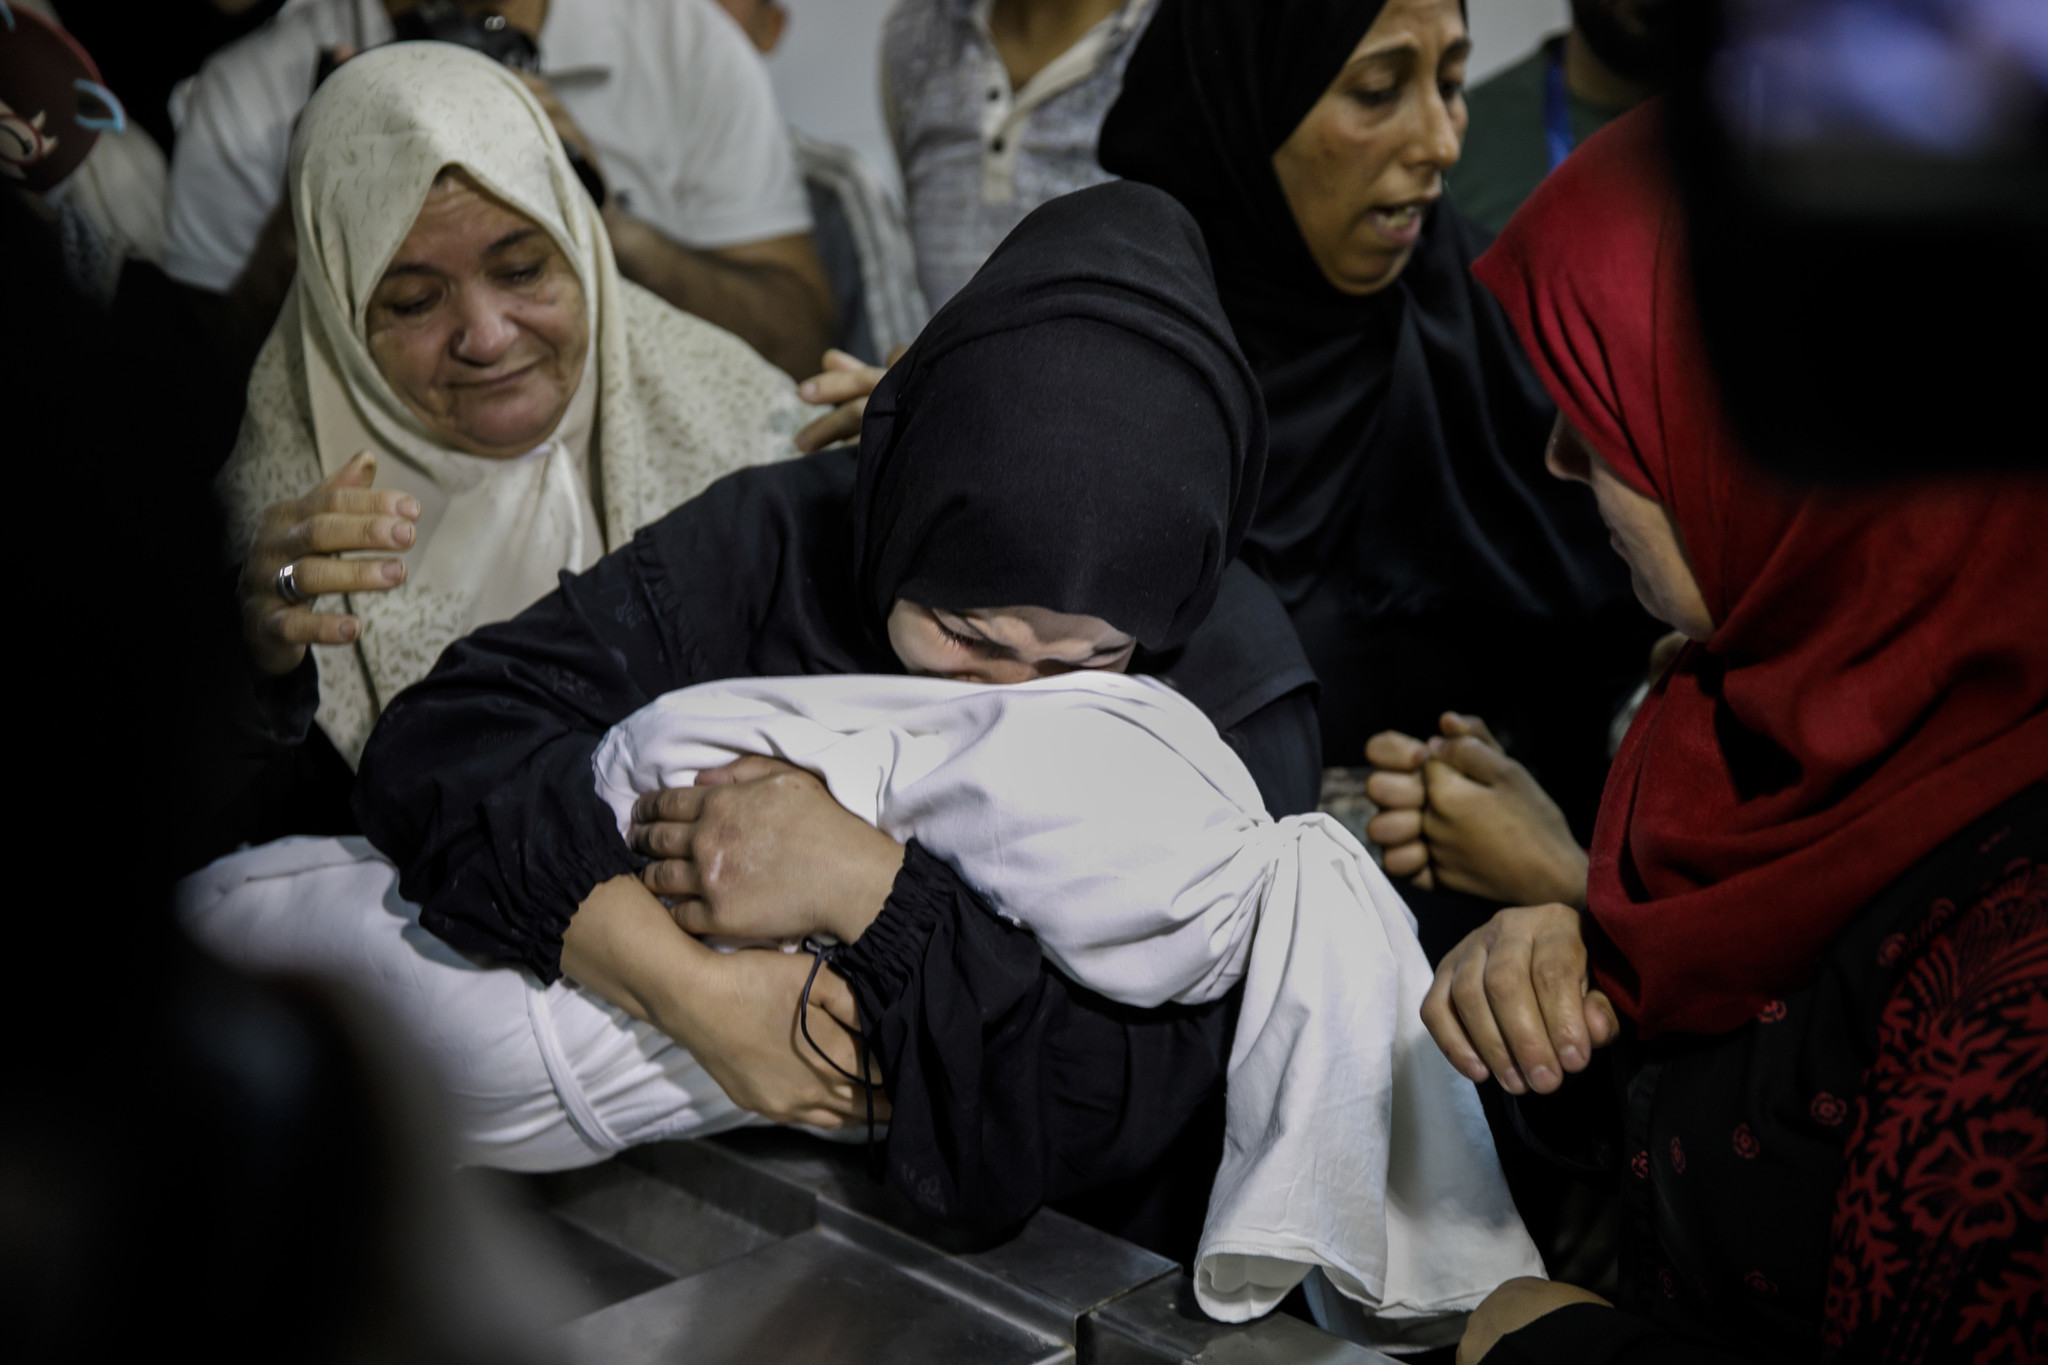 GAZA CITY, GAZA — TUESDAY, MAY 15, 2018: Mariam Mahmud Ahmed Ghandour, mourns her child, Laila Anwa